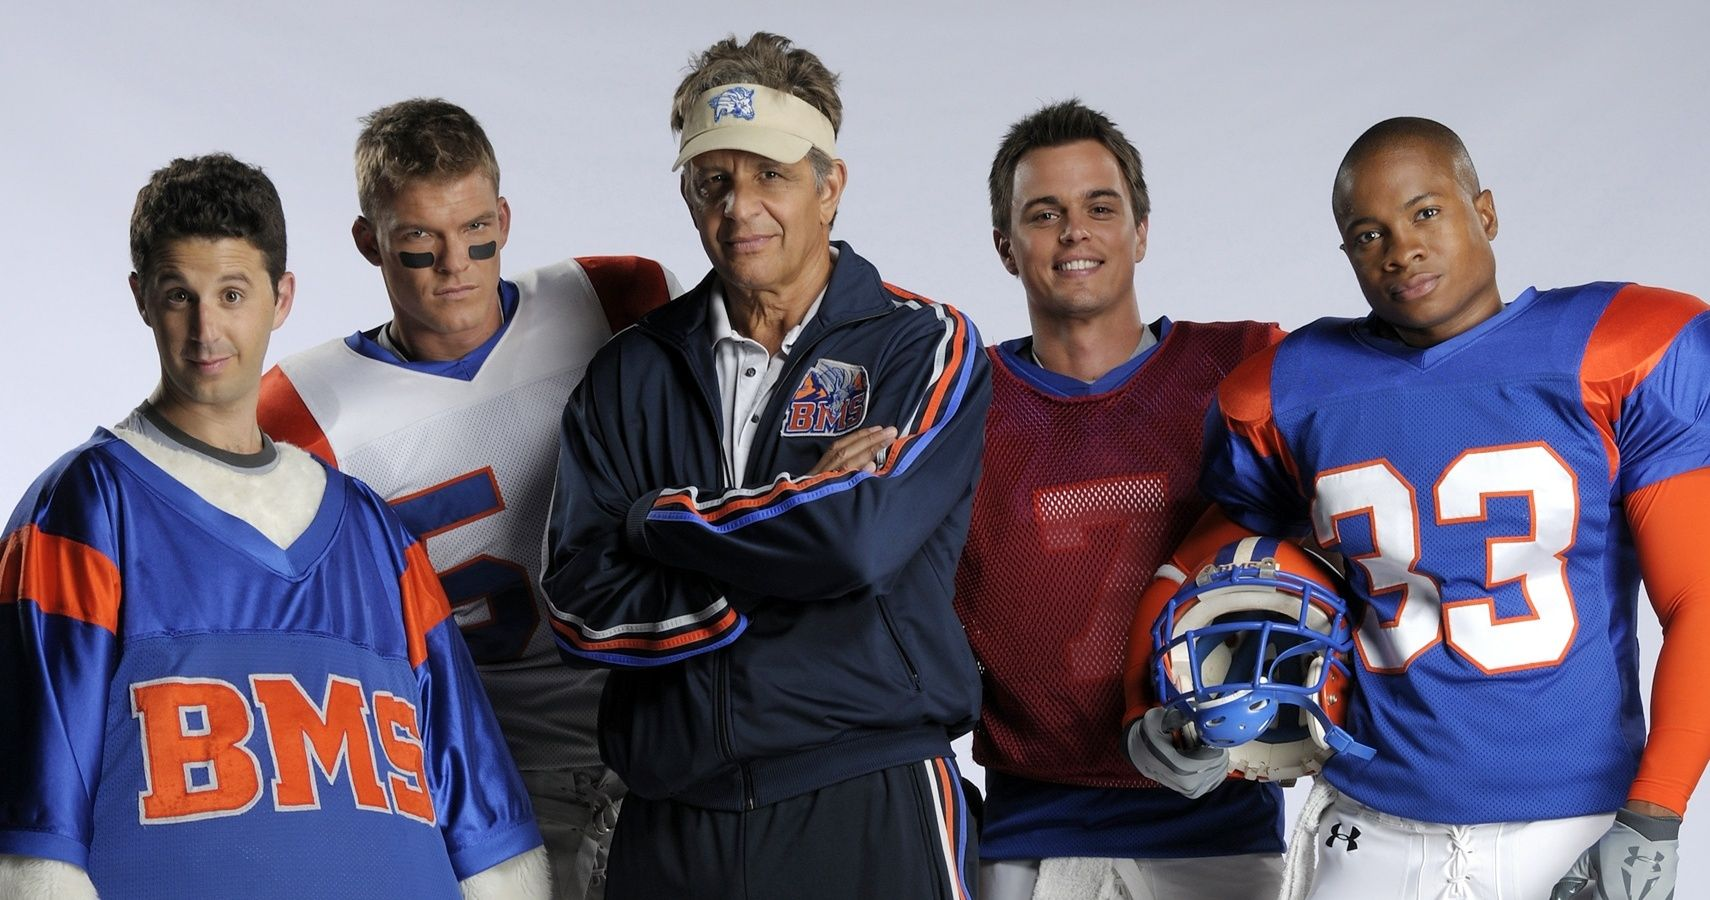 Blue Mountain State The 10 Best Episodes According To Imdb